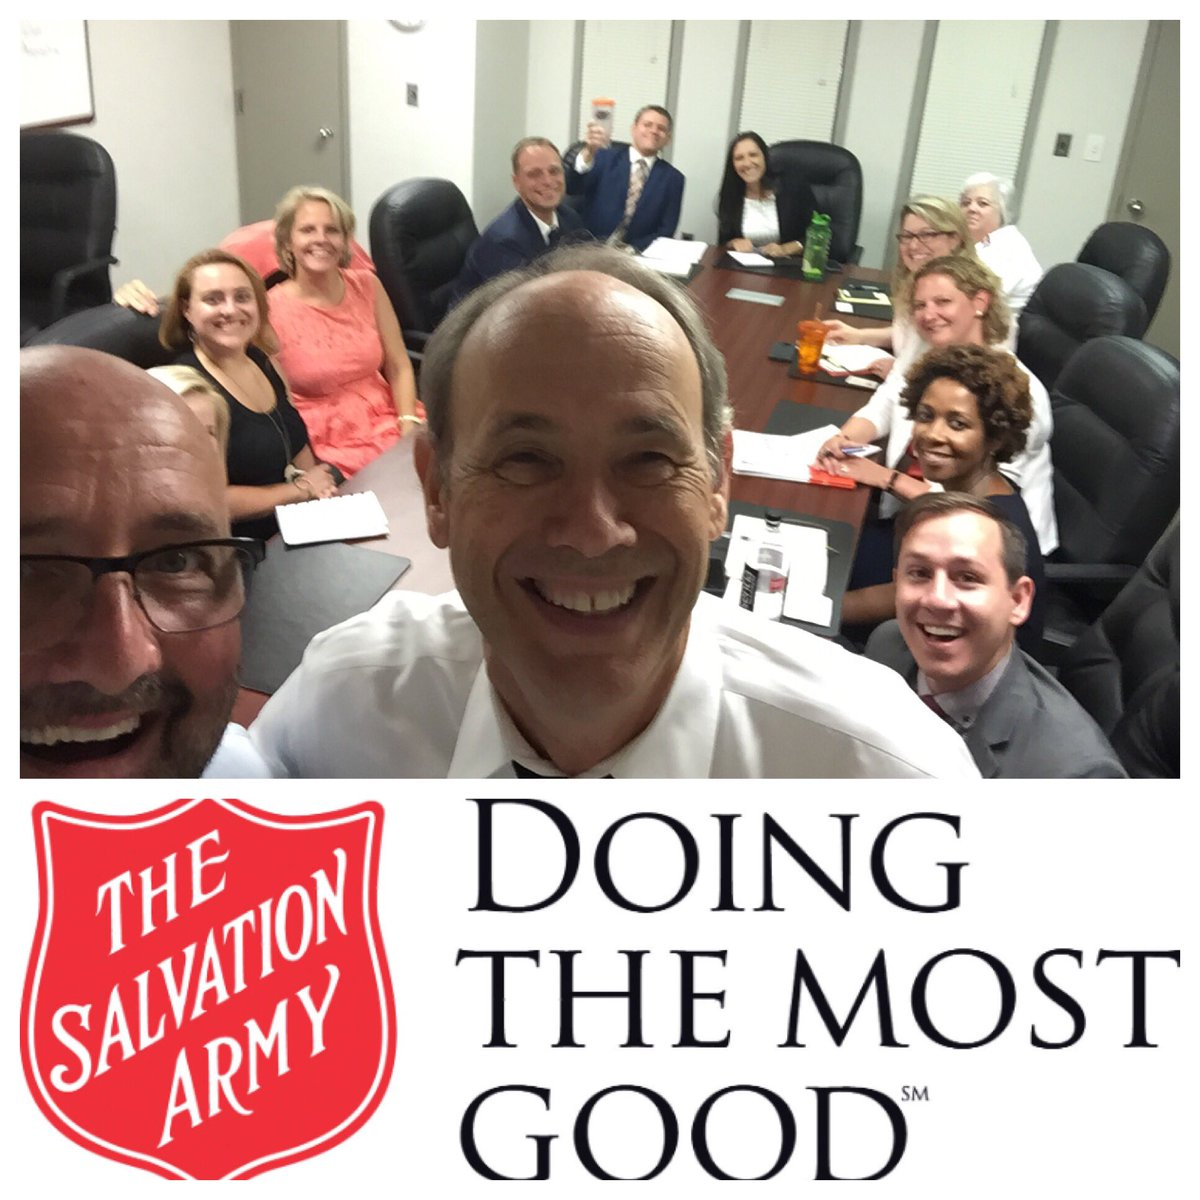 Inspiring visit with fave #ymca #charity partners and friends.  Thx for hosting us, @rbusroe, Sabrina, @JRLJL1 @Byrd and @SalvationArmyUS!<br>http://pic.twitter.com/Ob6KLI50Uf